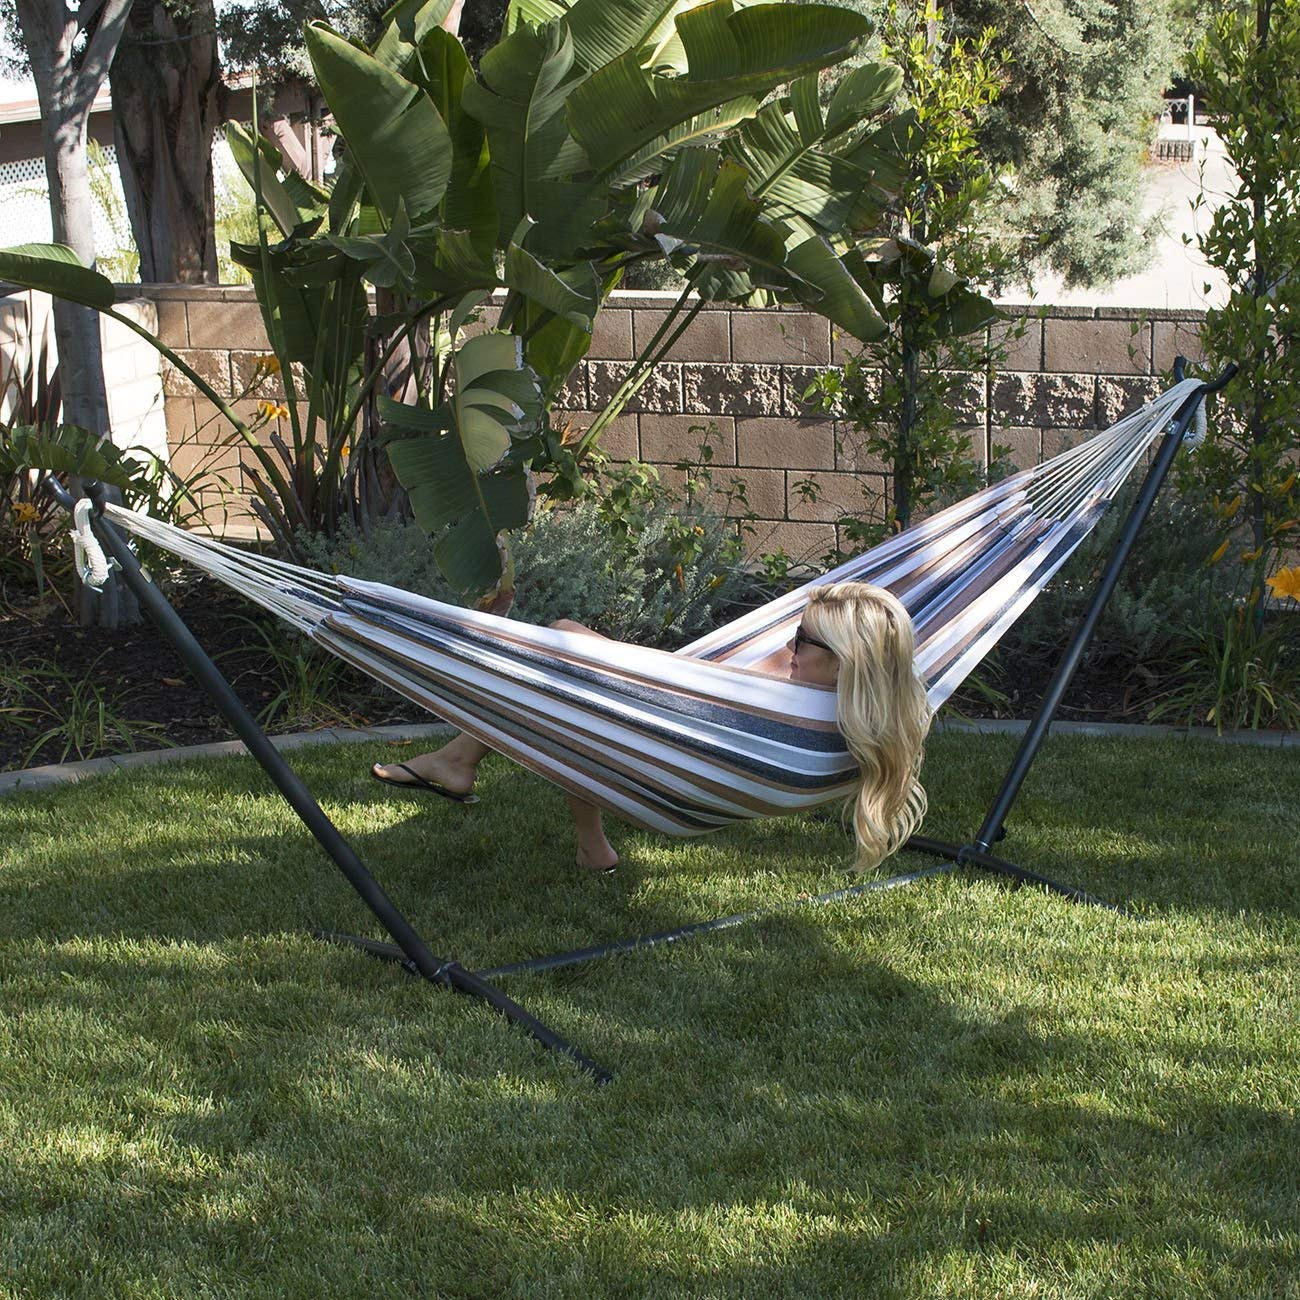 Globe House Products GHP 450-Lbs Capacity Desrt Moon Outdoor Patio Cotton Double Hammock with Steel Stand